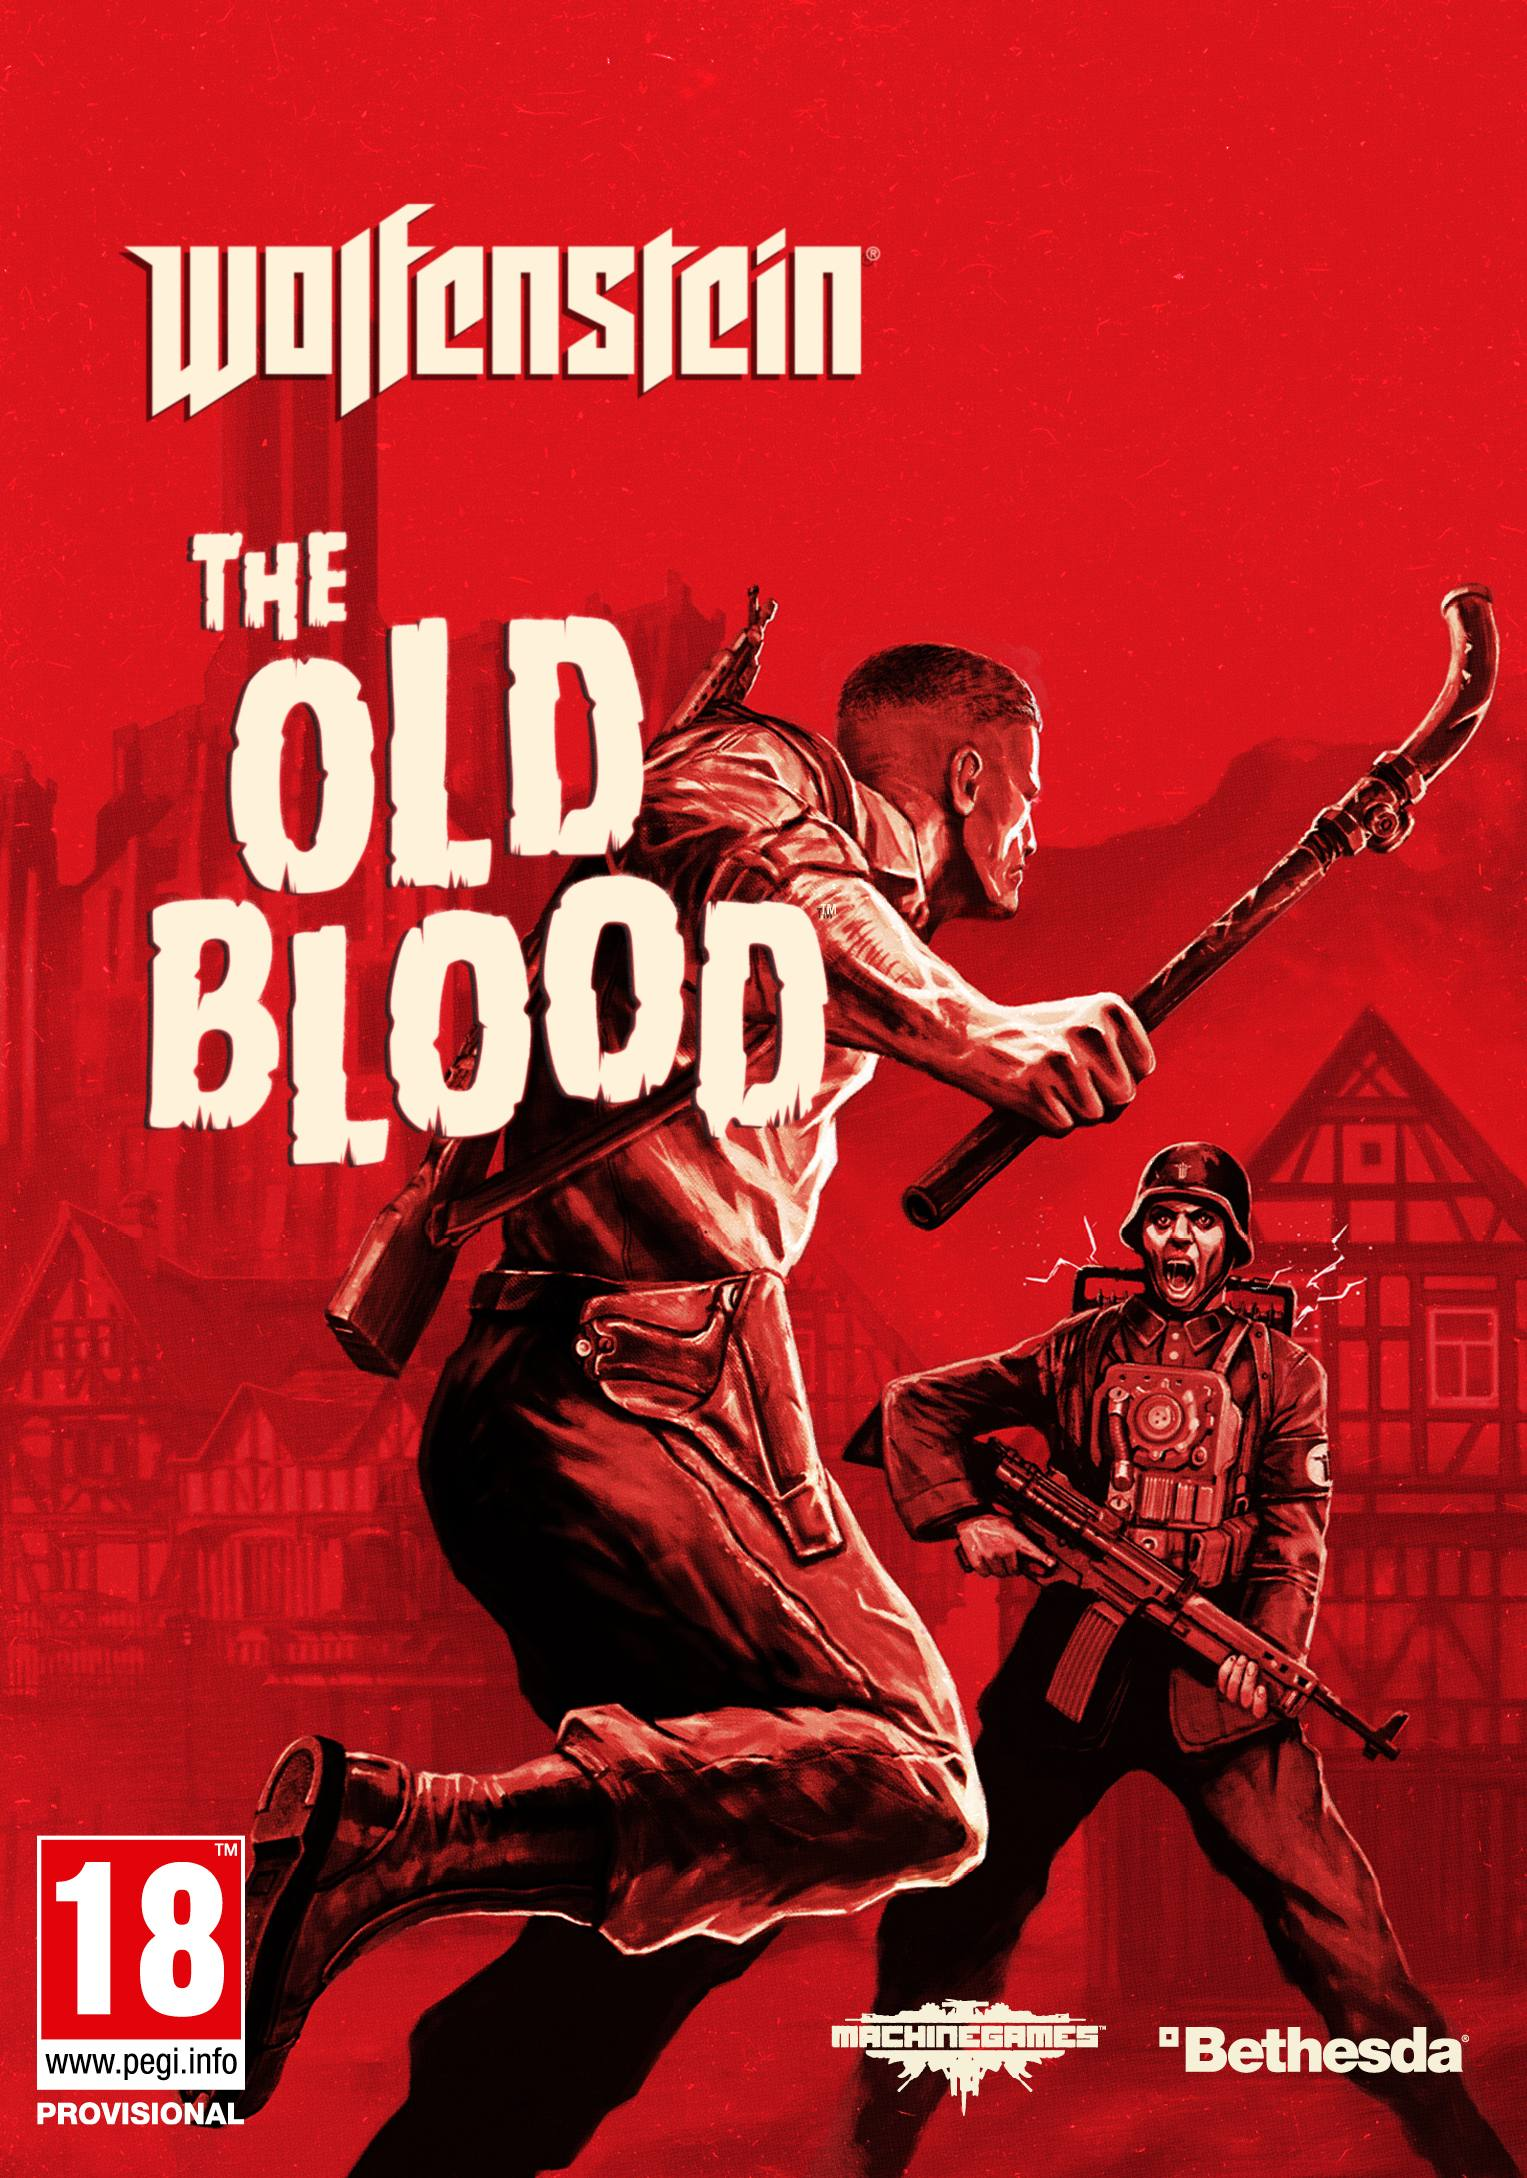 [Win] Wolfenstein: The Old Blood (2015) Українізатор